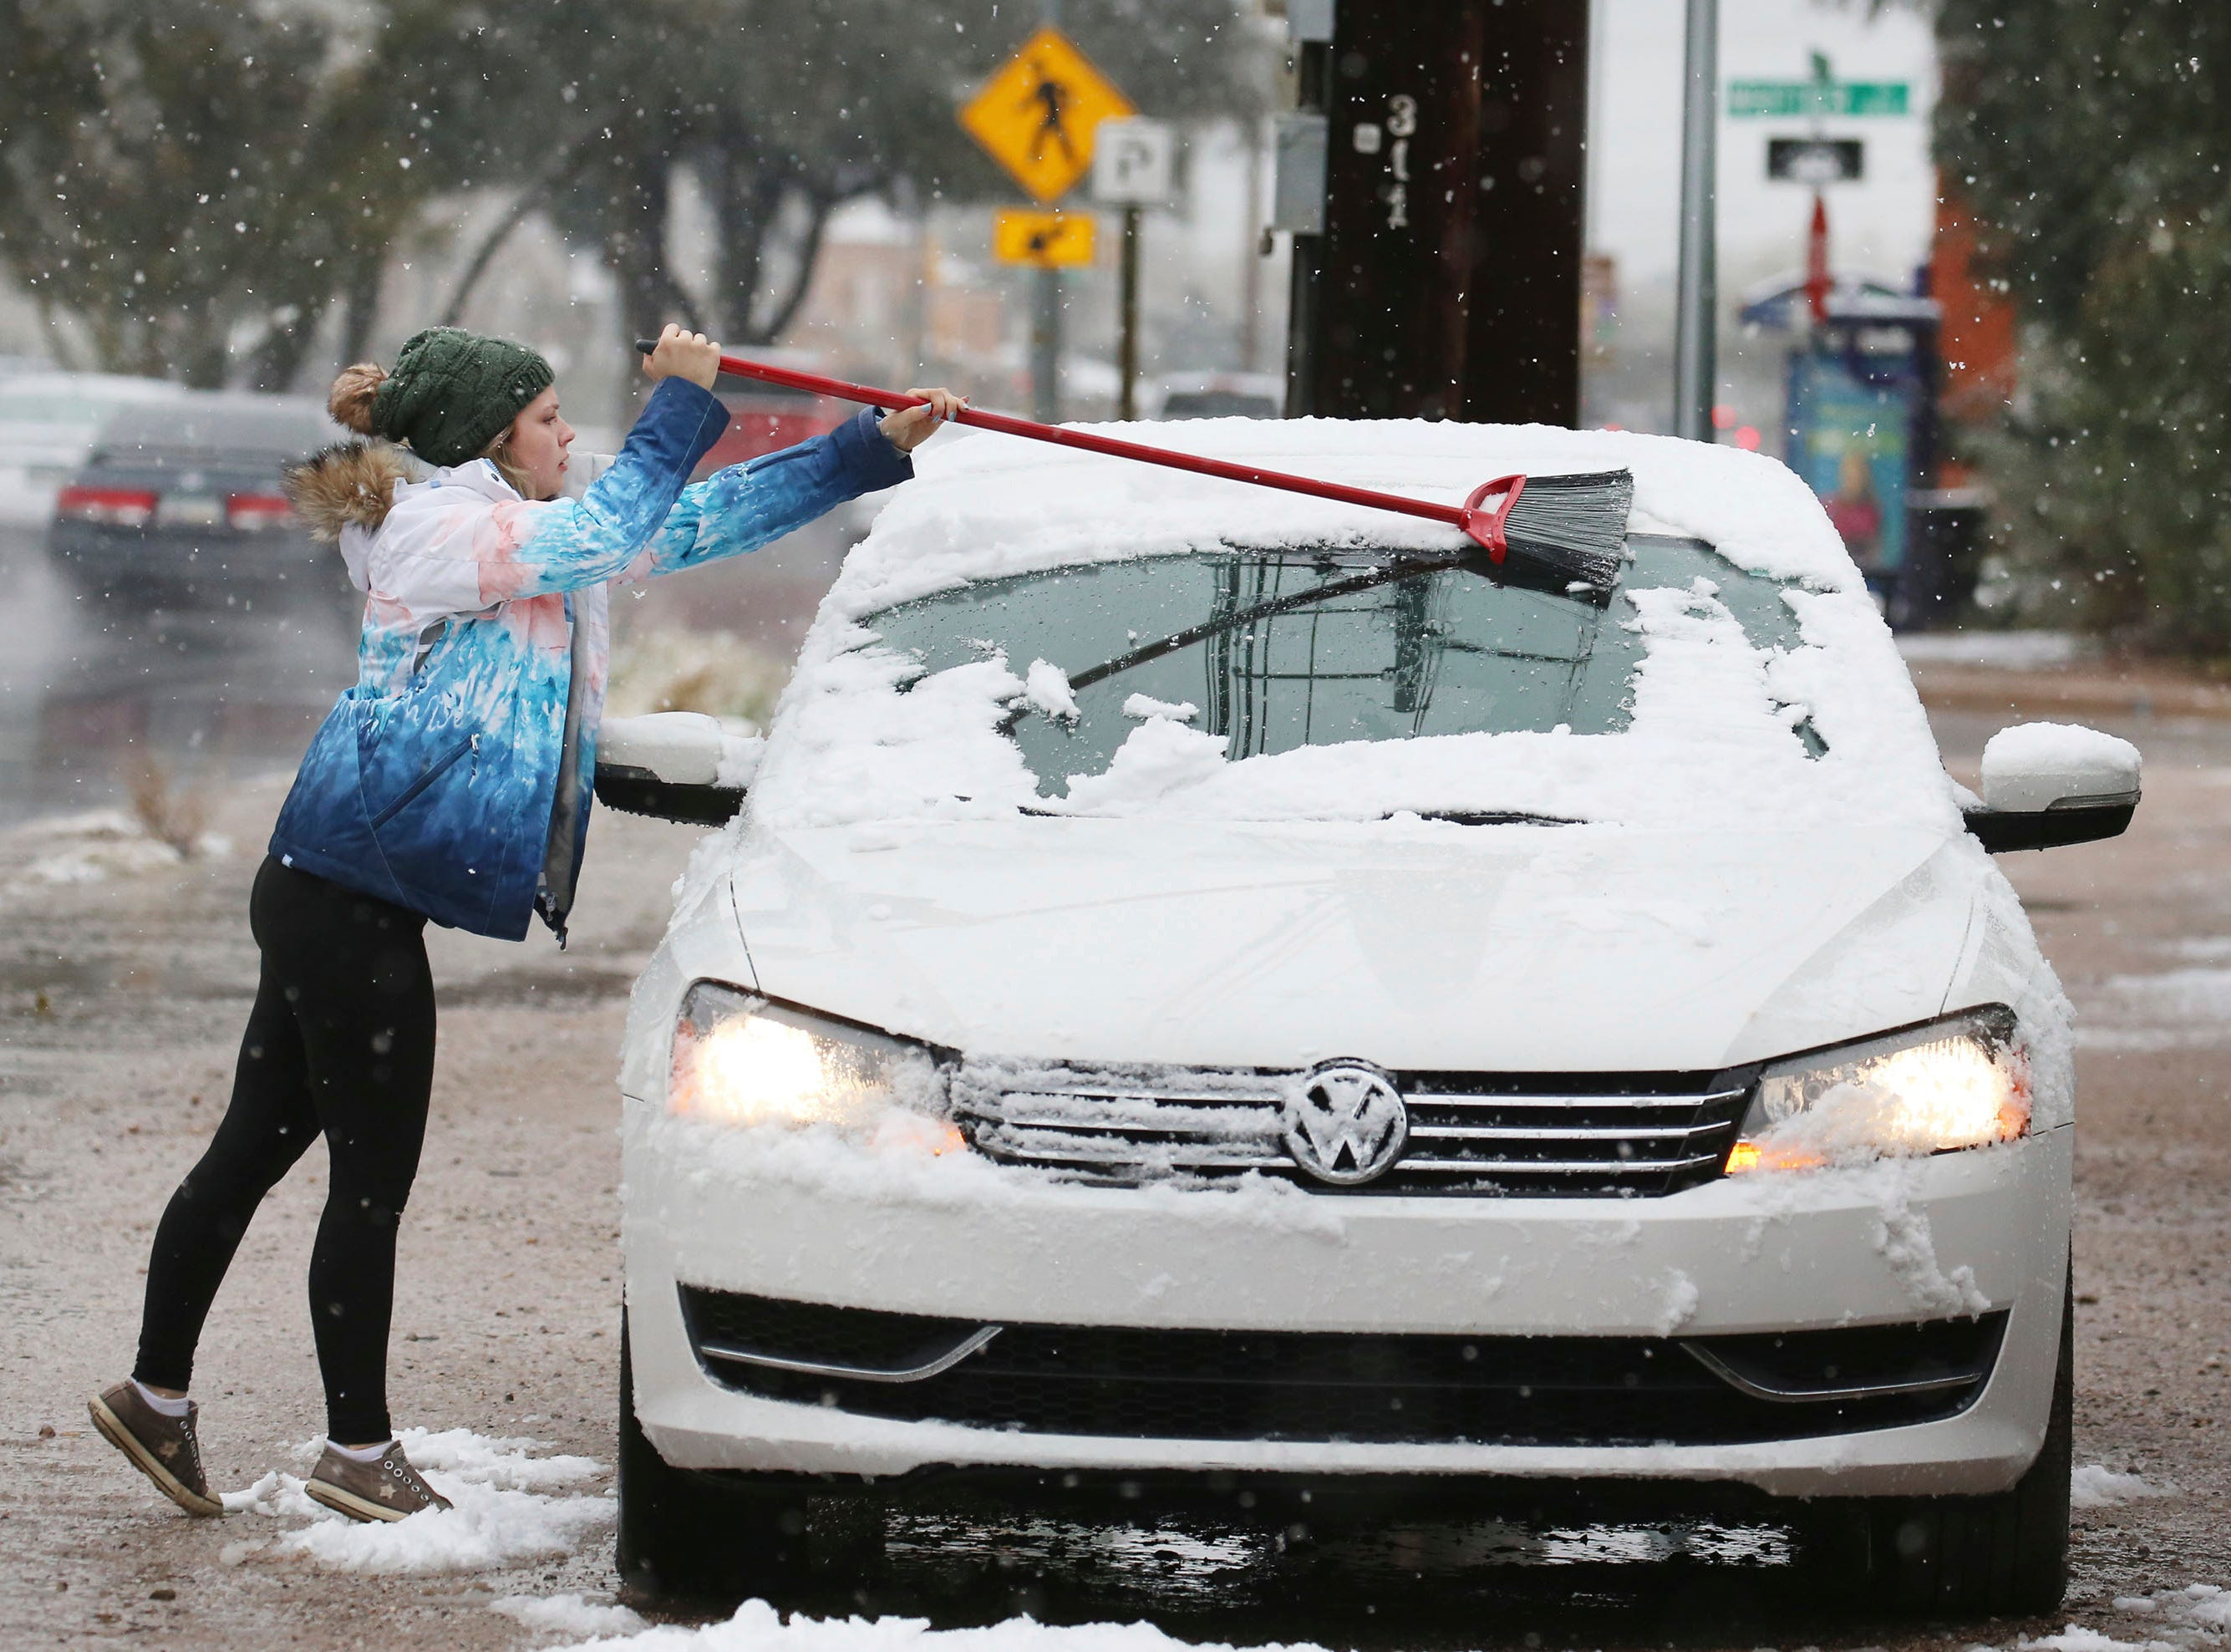 Ambria Dell'Oro uses a broom to wipe the collected snow from her car Friday, Feb. 22, 2019, in Tucson, Ariz.  Snow fell and accumulated in central and downtown Tucson on Friday, surprising many in a city where snow is extremely rare.